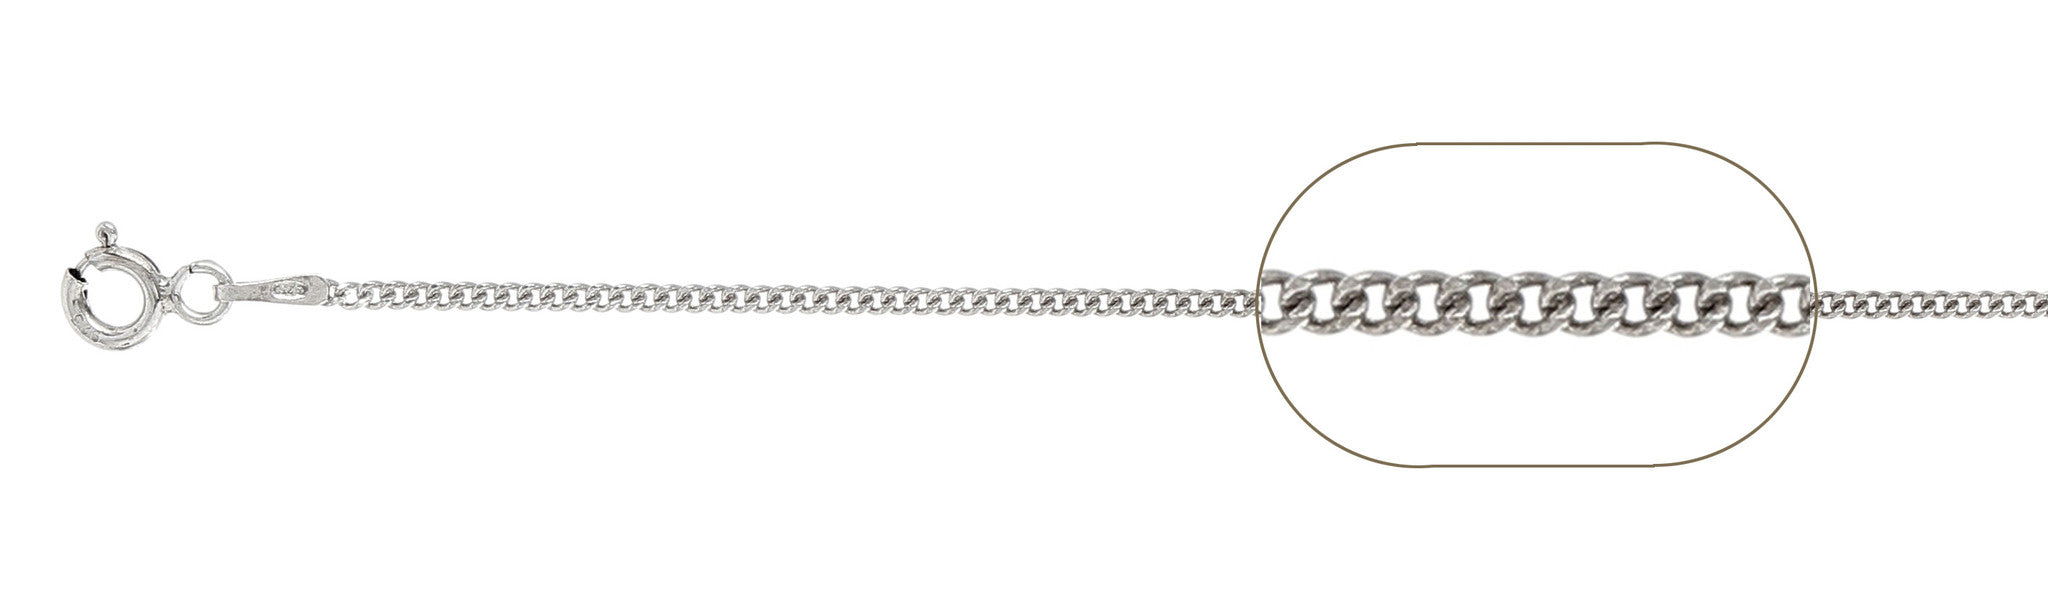 "040-1.5MM Sterling Silver Curb Chain Made in Italy Available in 16""- 30"" inches"